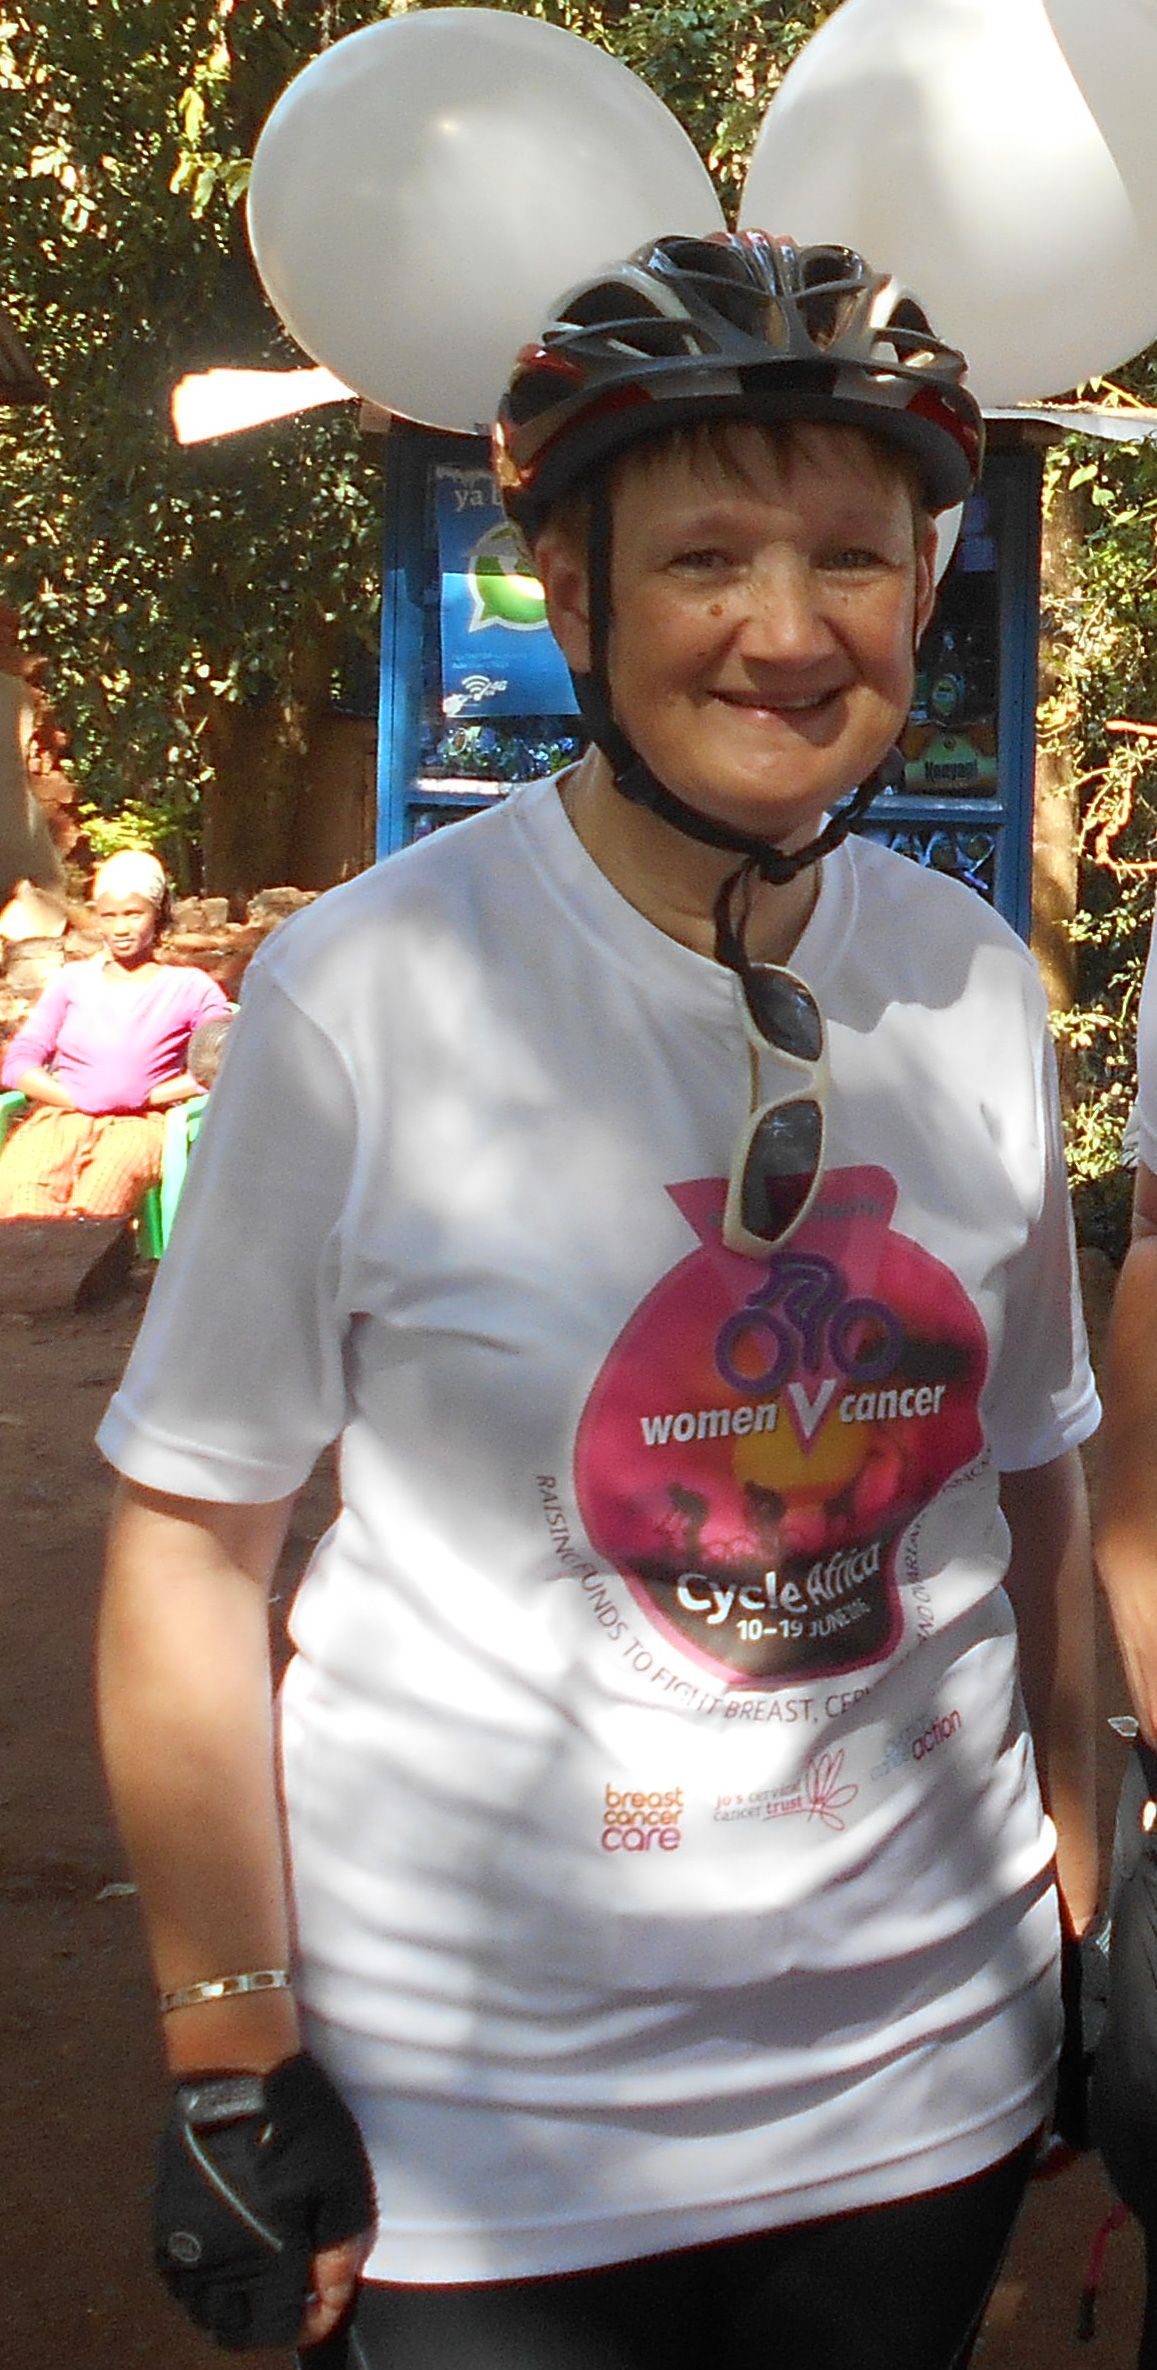 Women V Cancer Cycle Costa Rica 2019 - Denise Roberts